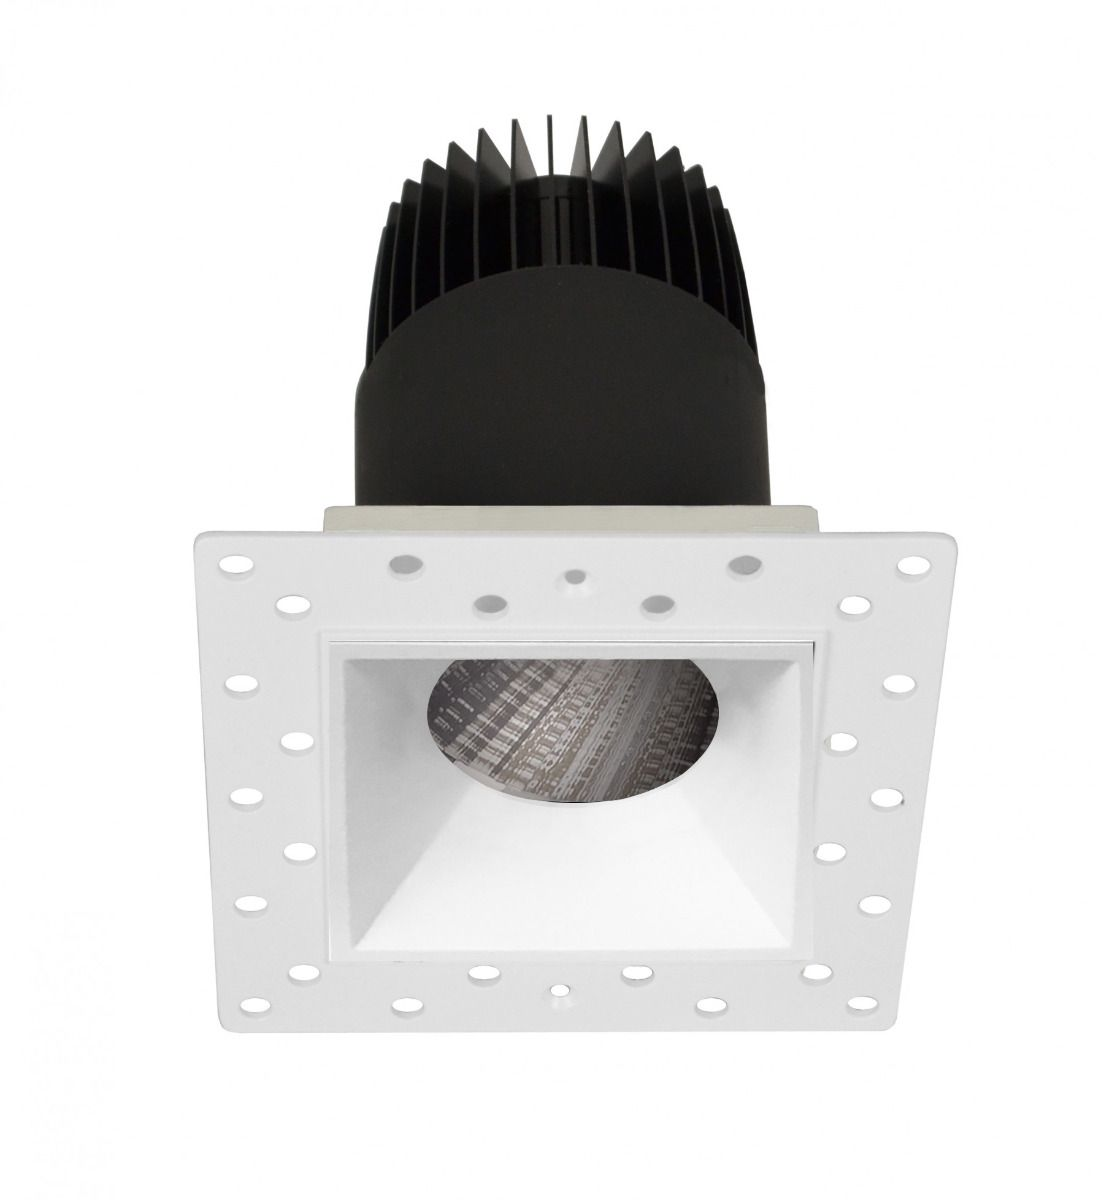 Alcon Lighting 14073 Ww Illusione 2 5 Inch Architectural Led Square Trimless Recessed Wall Wash Light Fixture